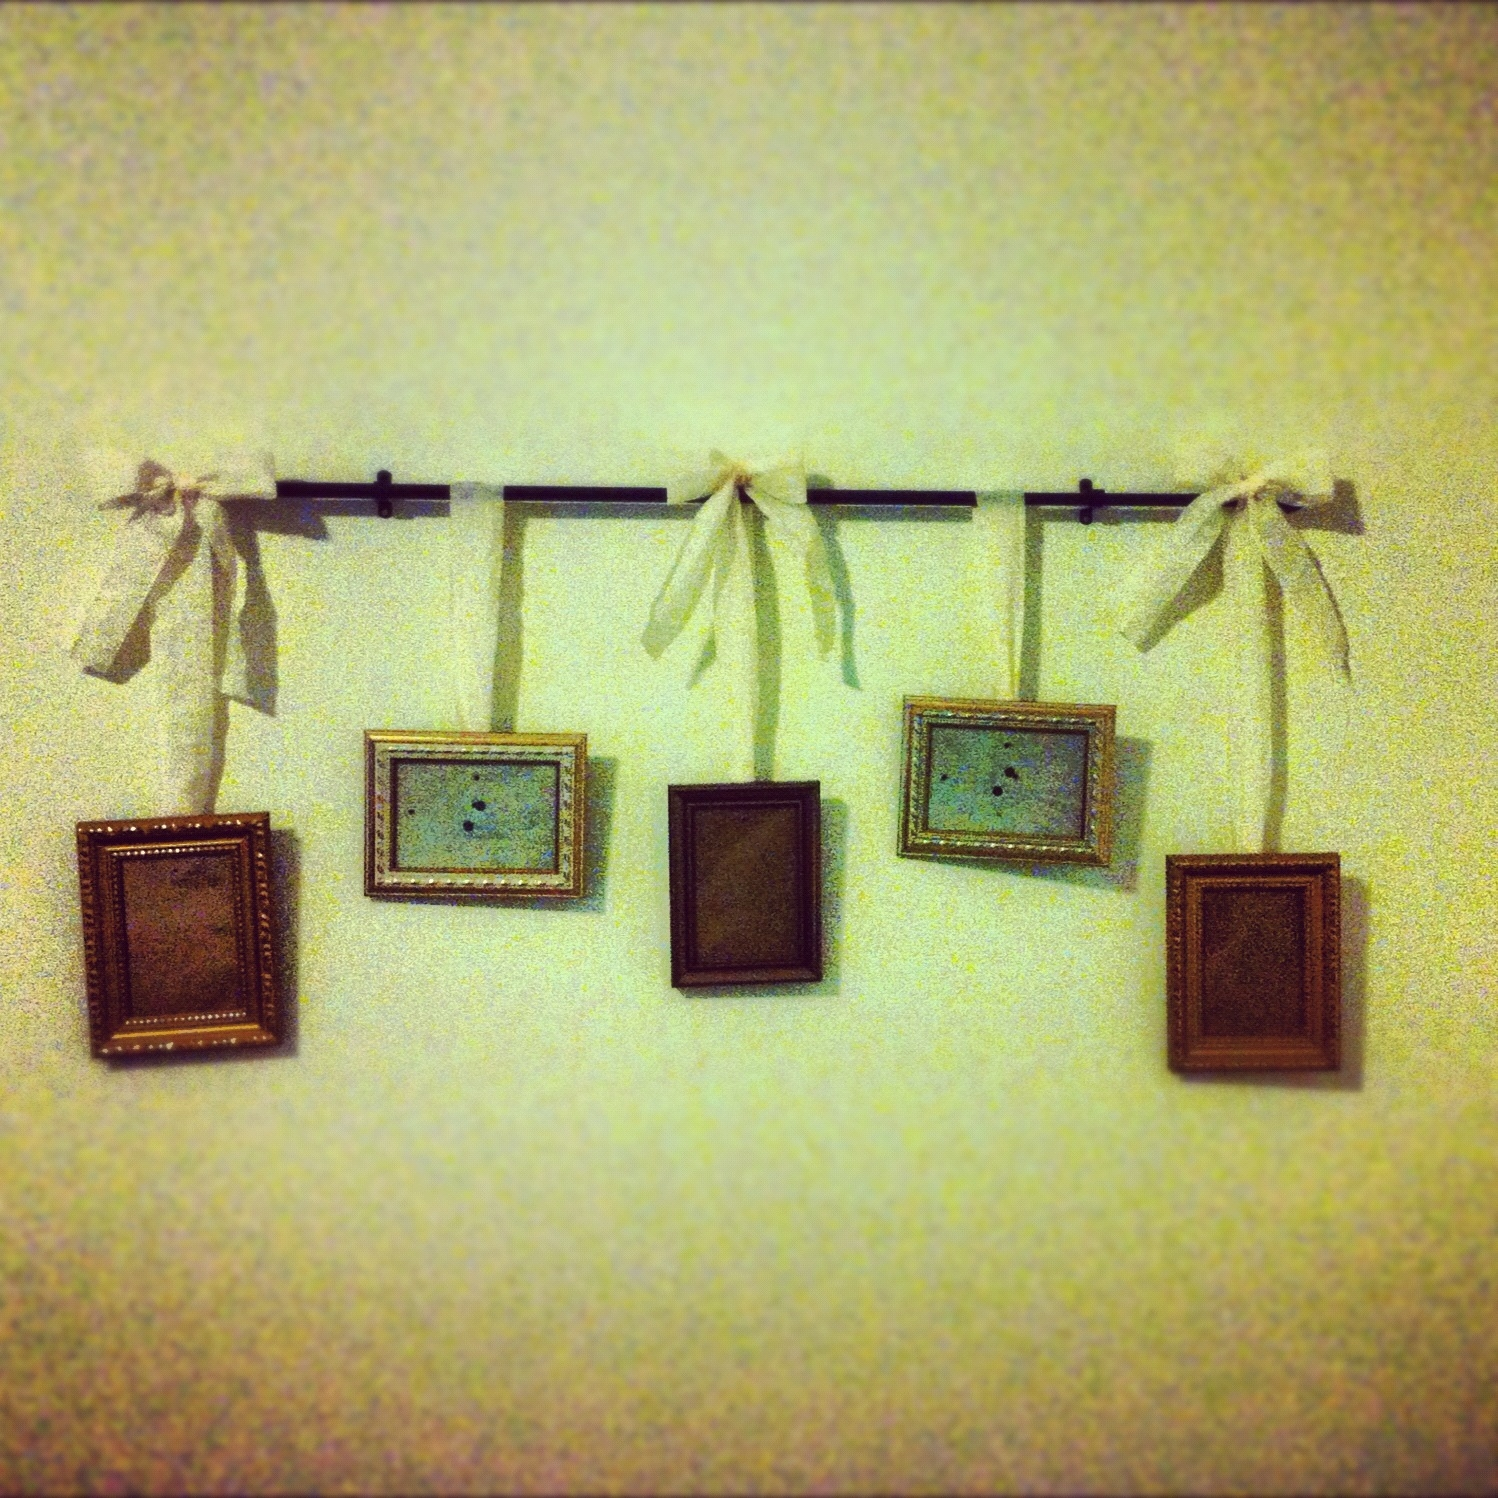 The NJ Report: 1st DIY Attempt: Hanging Picture Frames